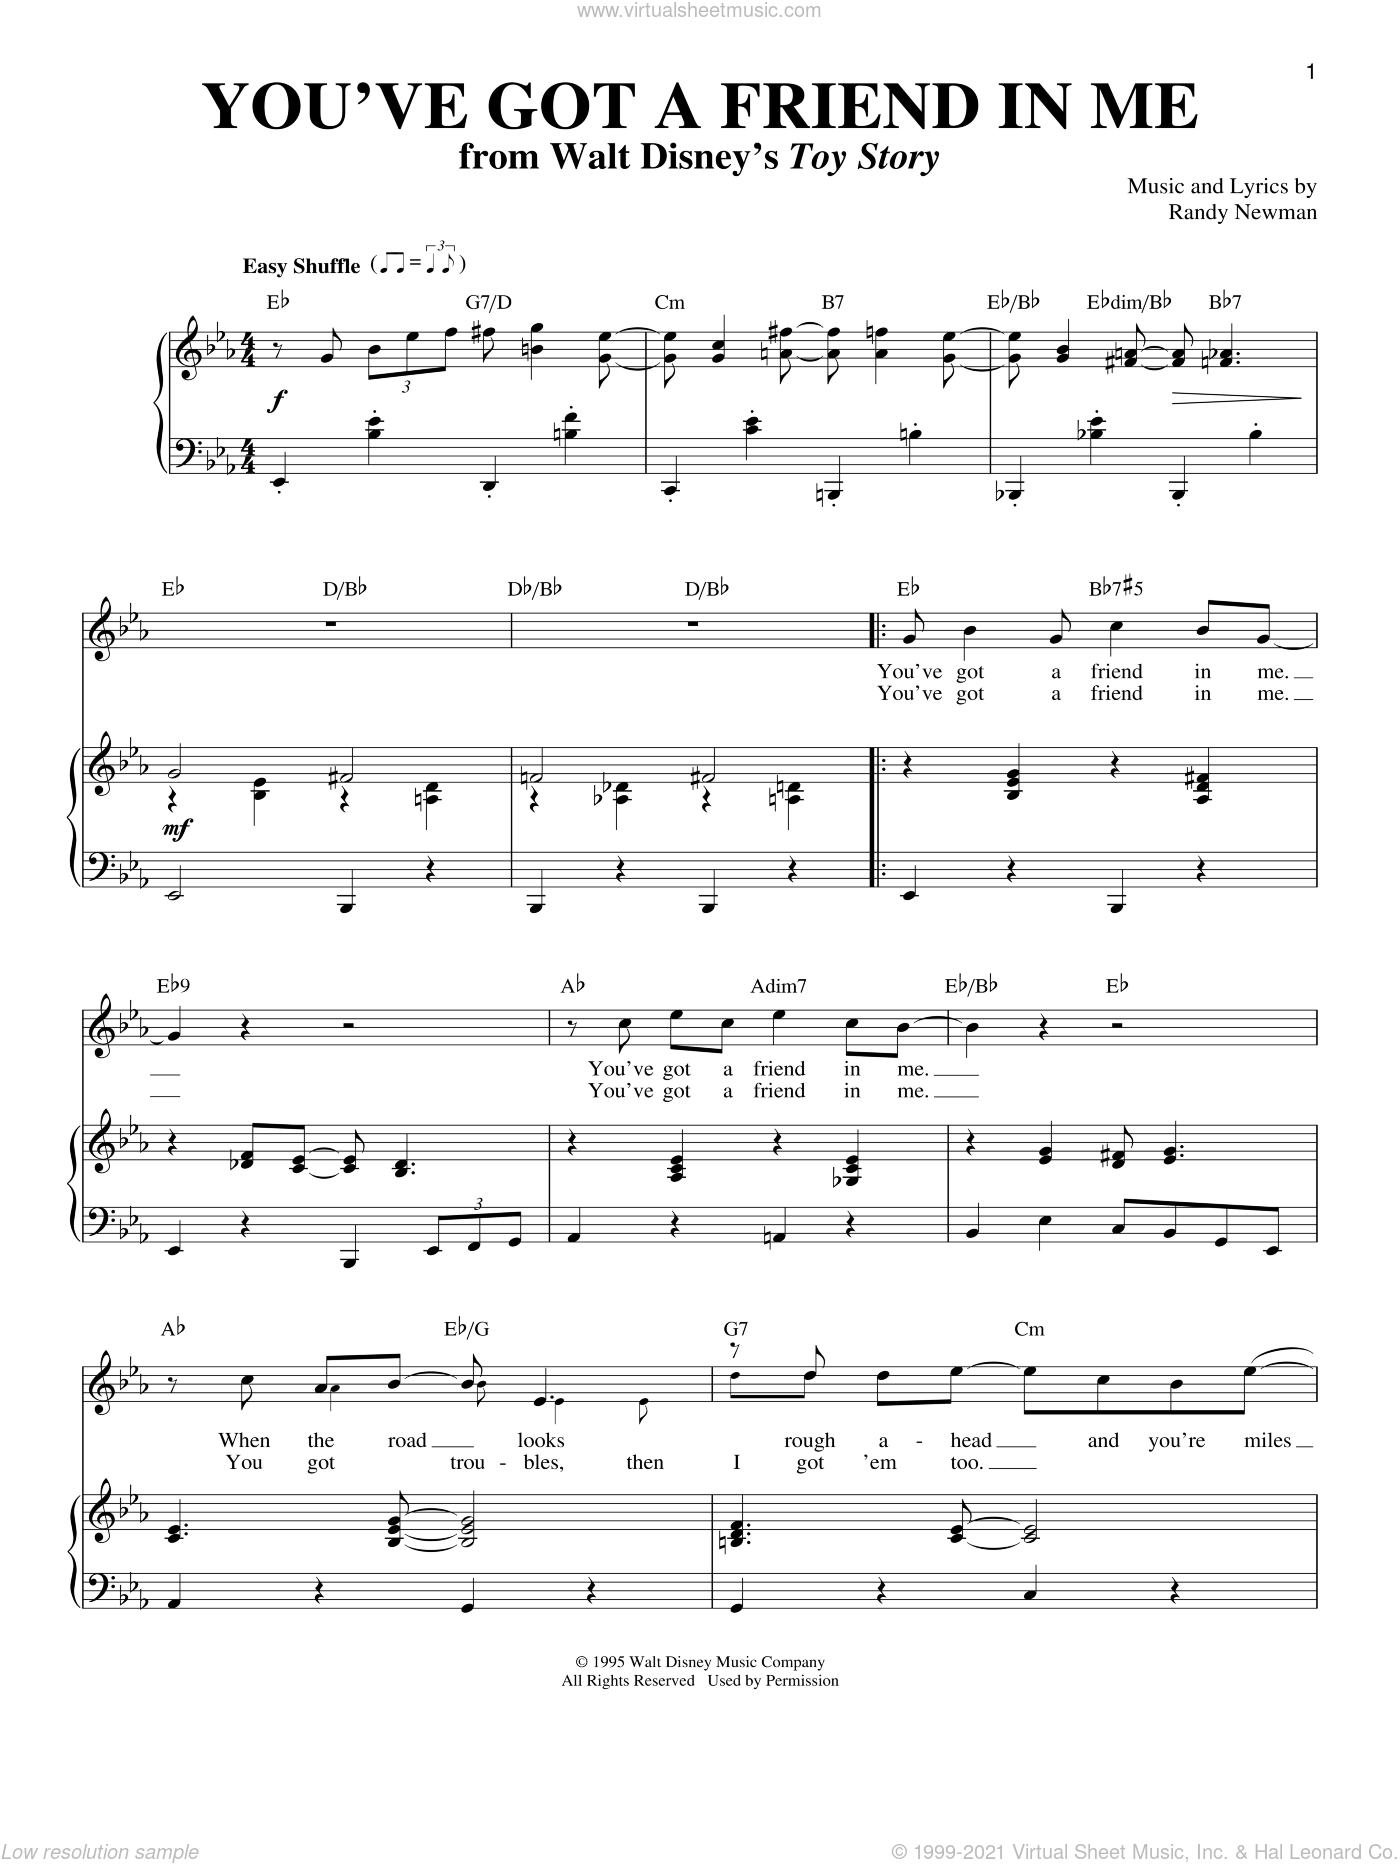 You've Got A Friend In Me (from Toy Story) sheet music for voice and piano by Randy Newman, Lyle Lovett and Toy Story (Movie), intermediate skill level